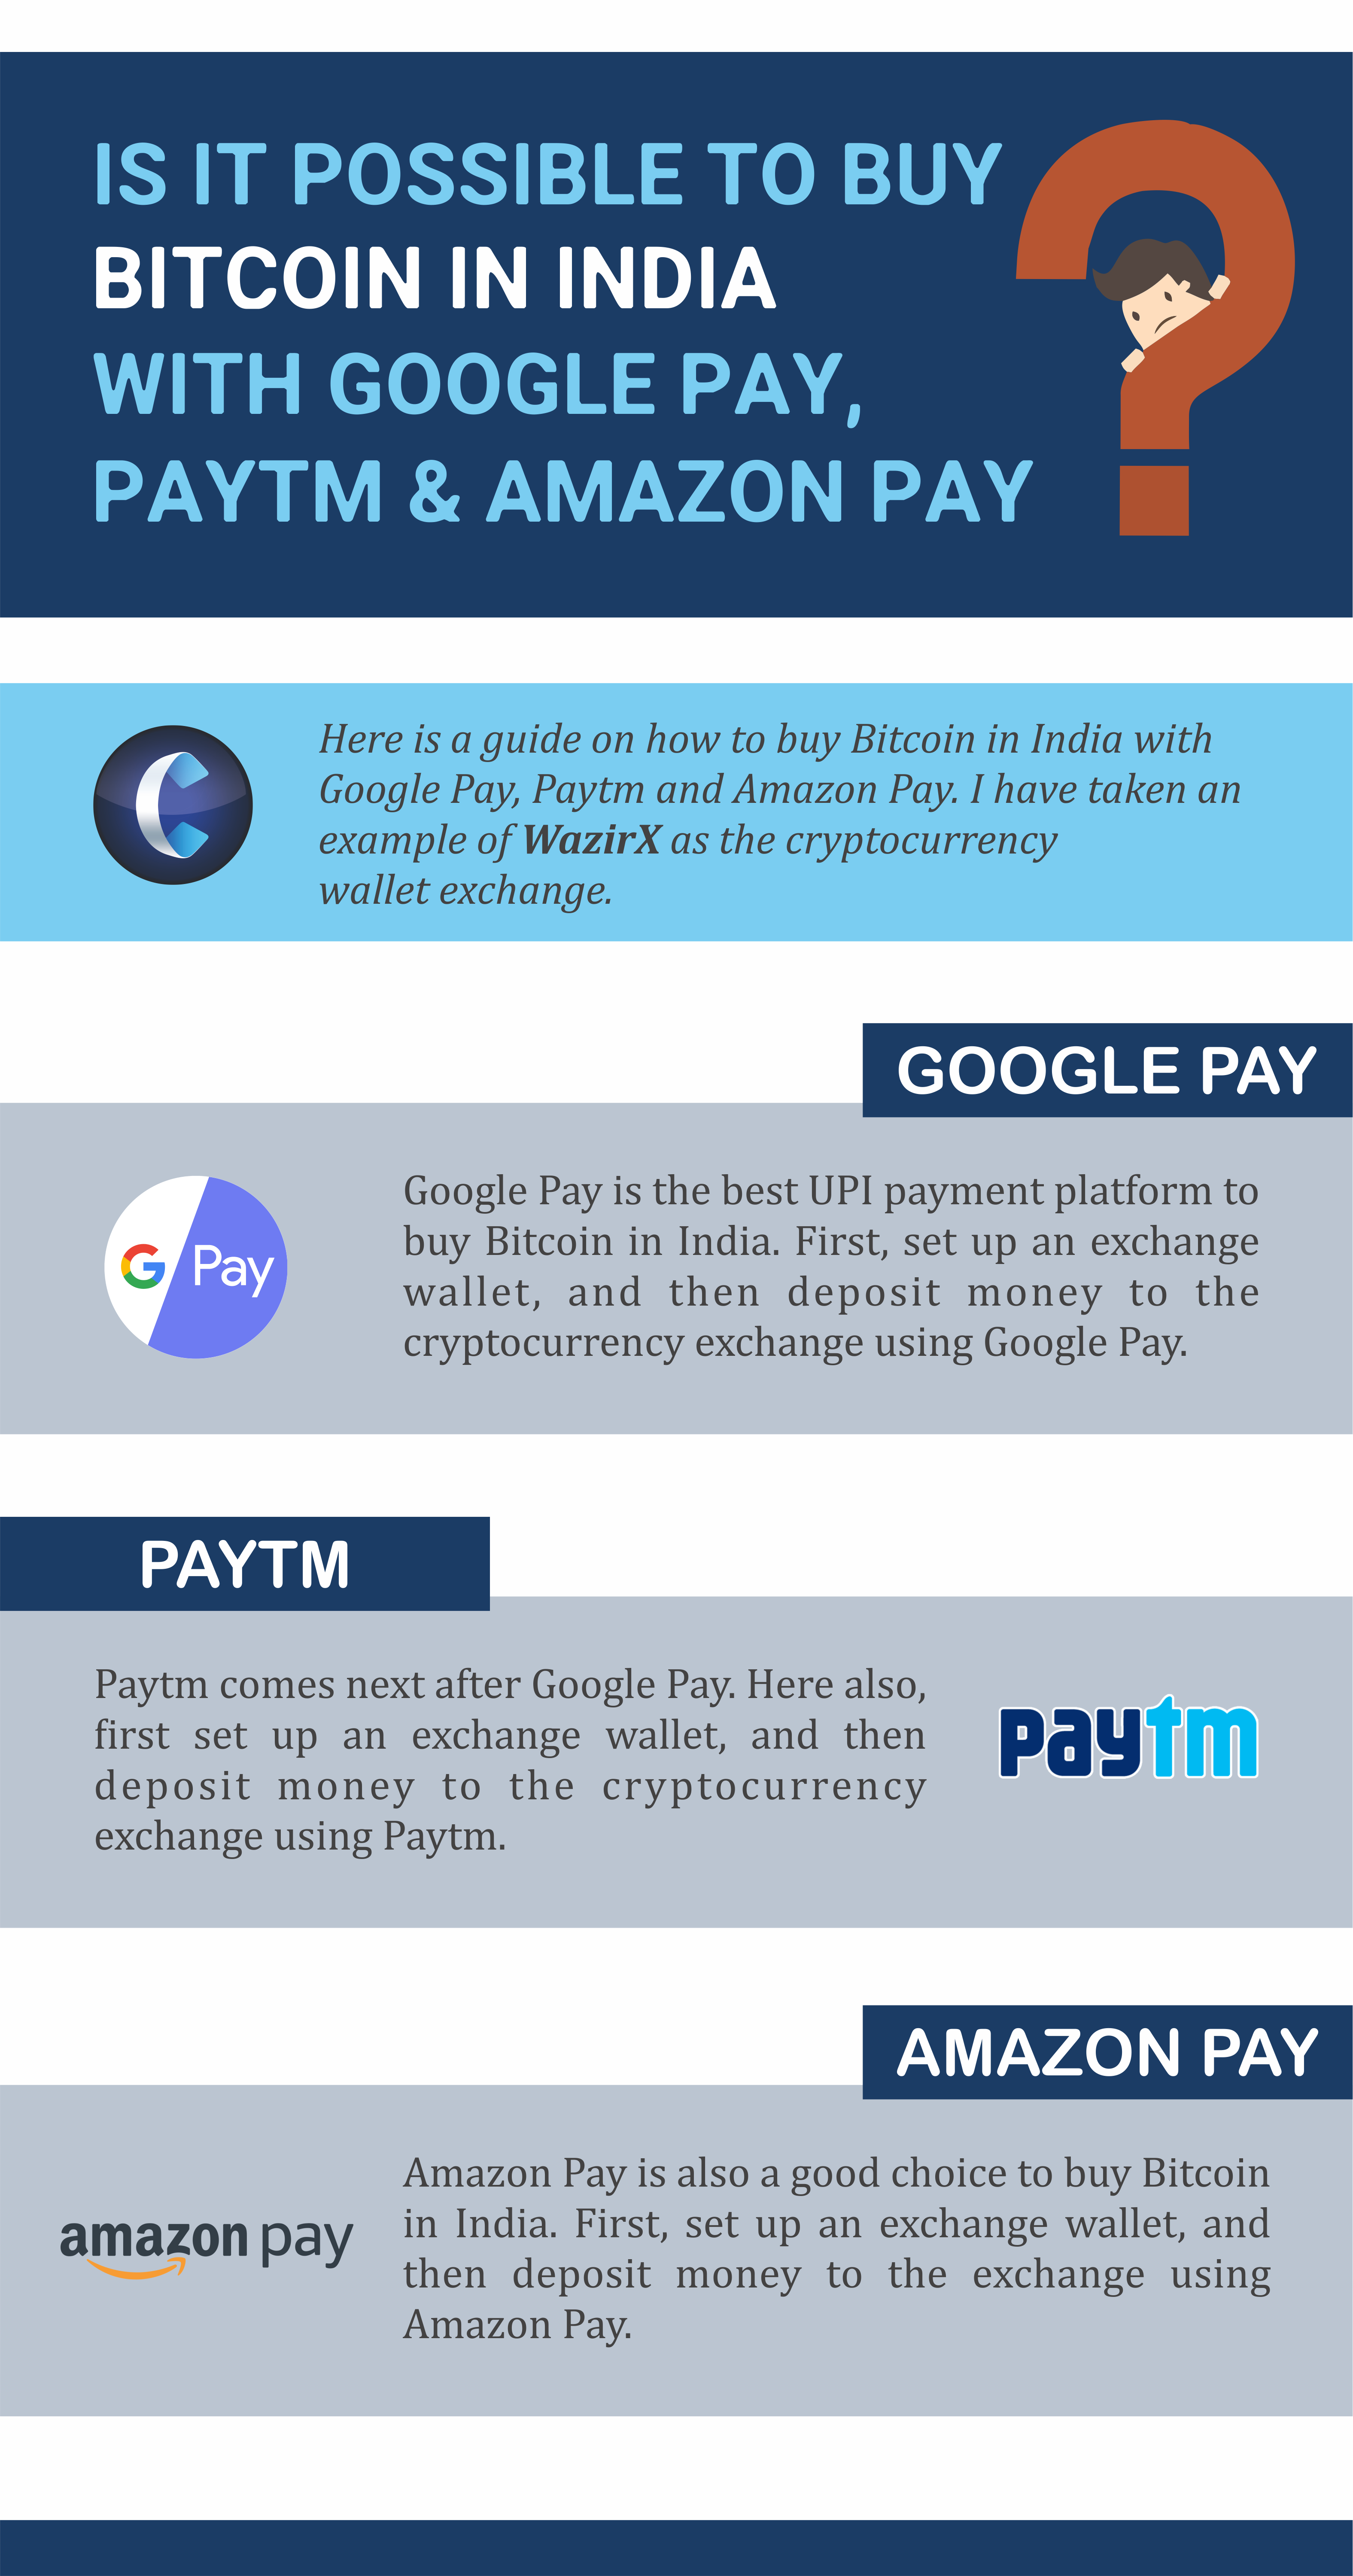 Buy Bitcoin In India With Google Pay, Paytm And Amazon Pay